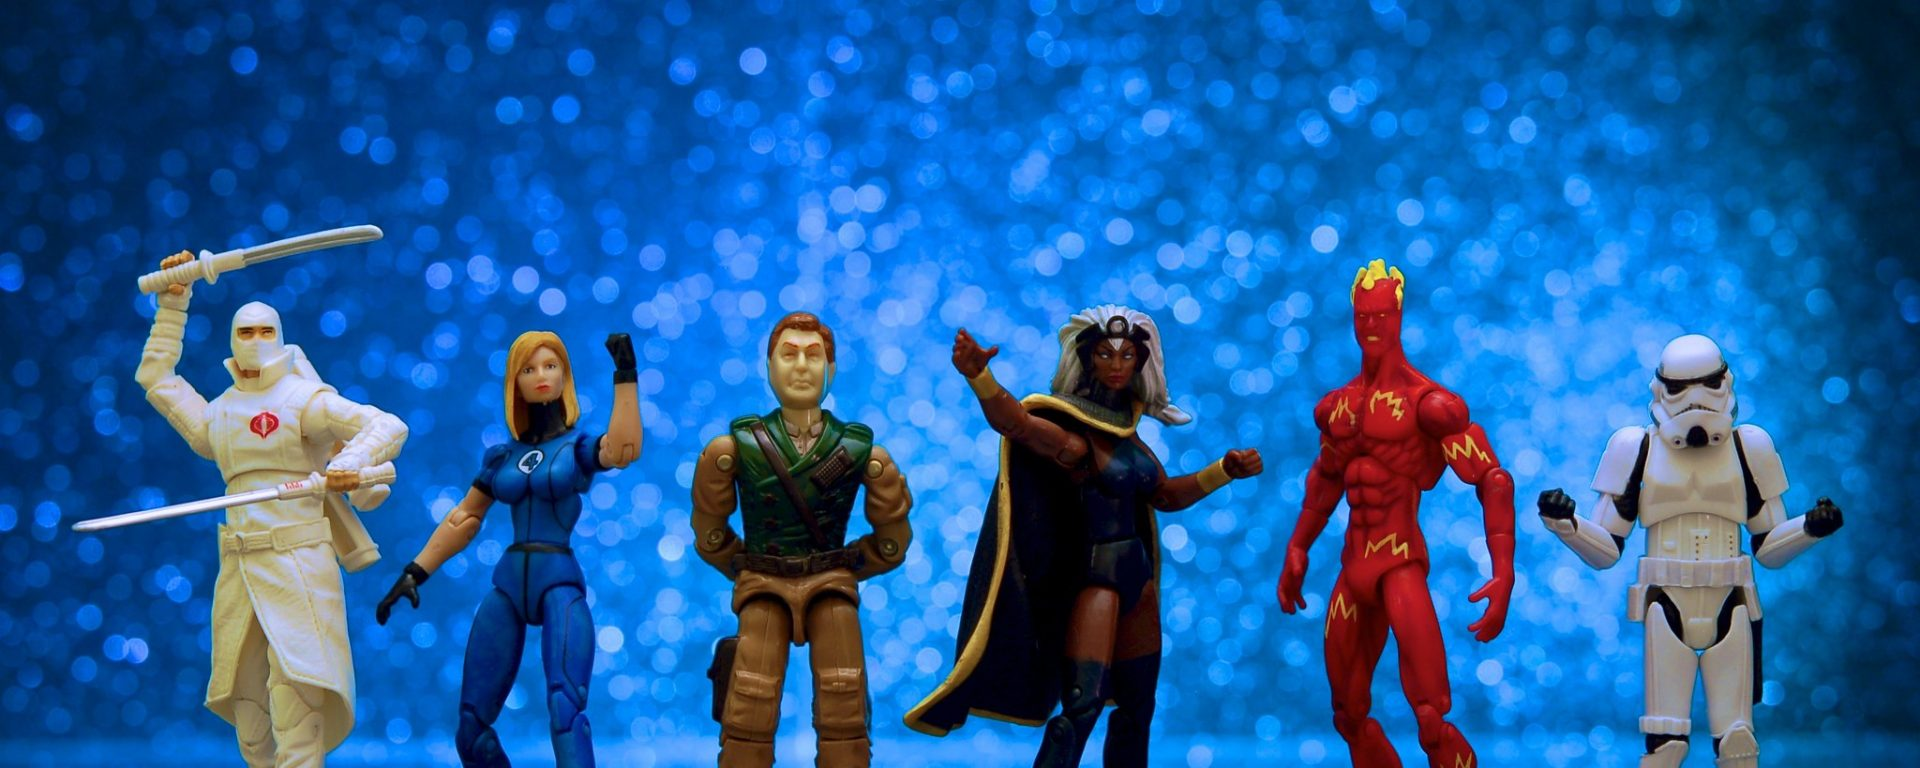 Six action figures stand together as a group in a line